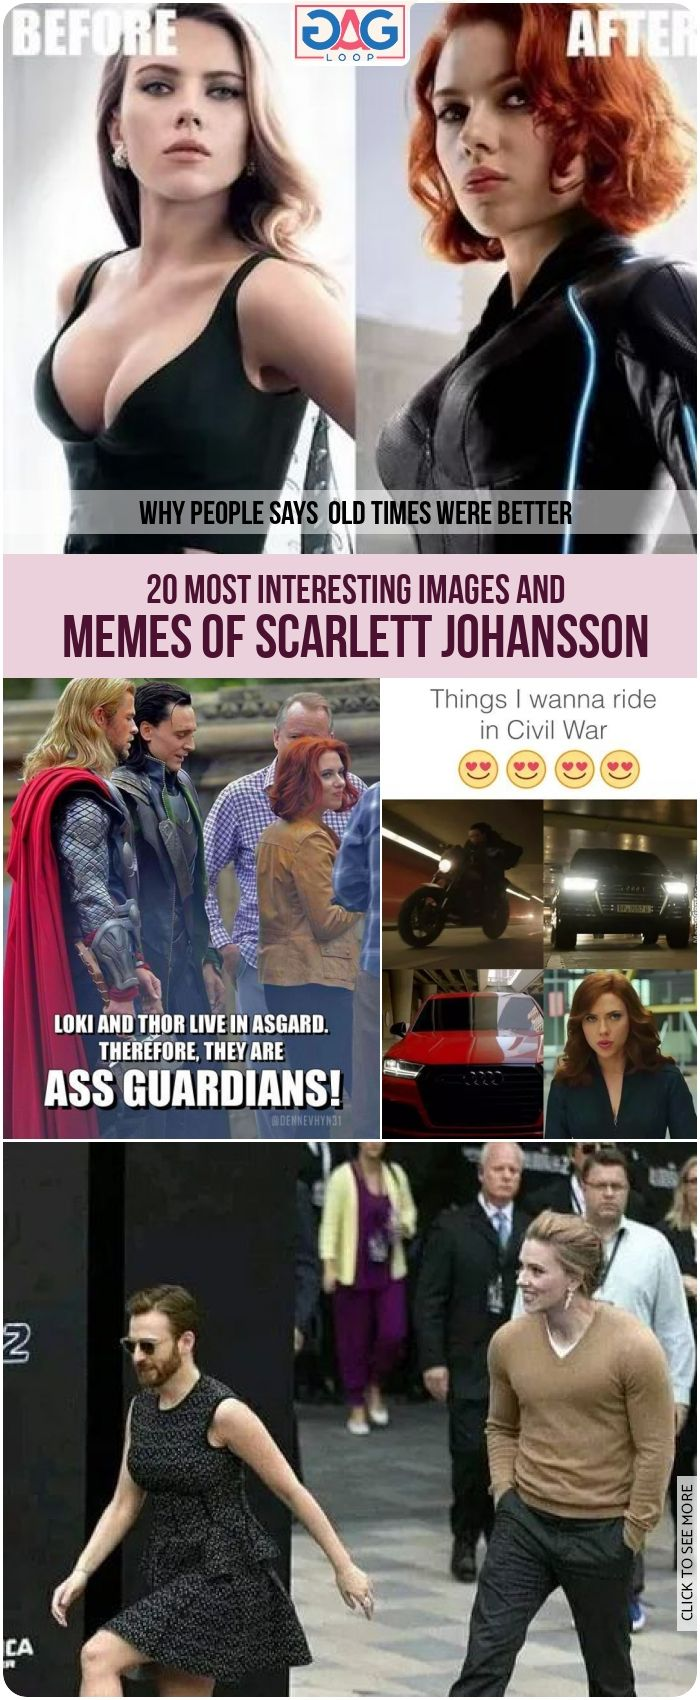 20 Most Interesting Images And Memes Of Scarlett Johansson Scarlett Scarlett Johansson Funnymemes Gagloop Memes Scarlett Johansson Scarlett Johansson